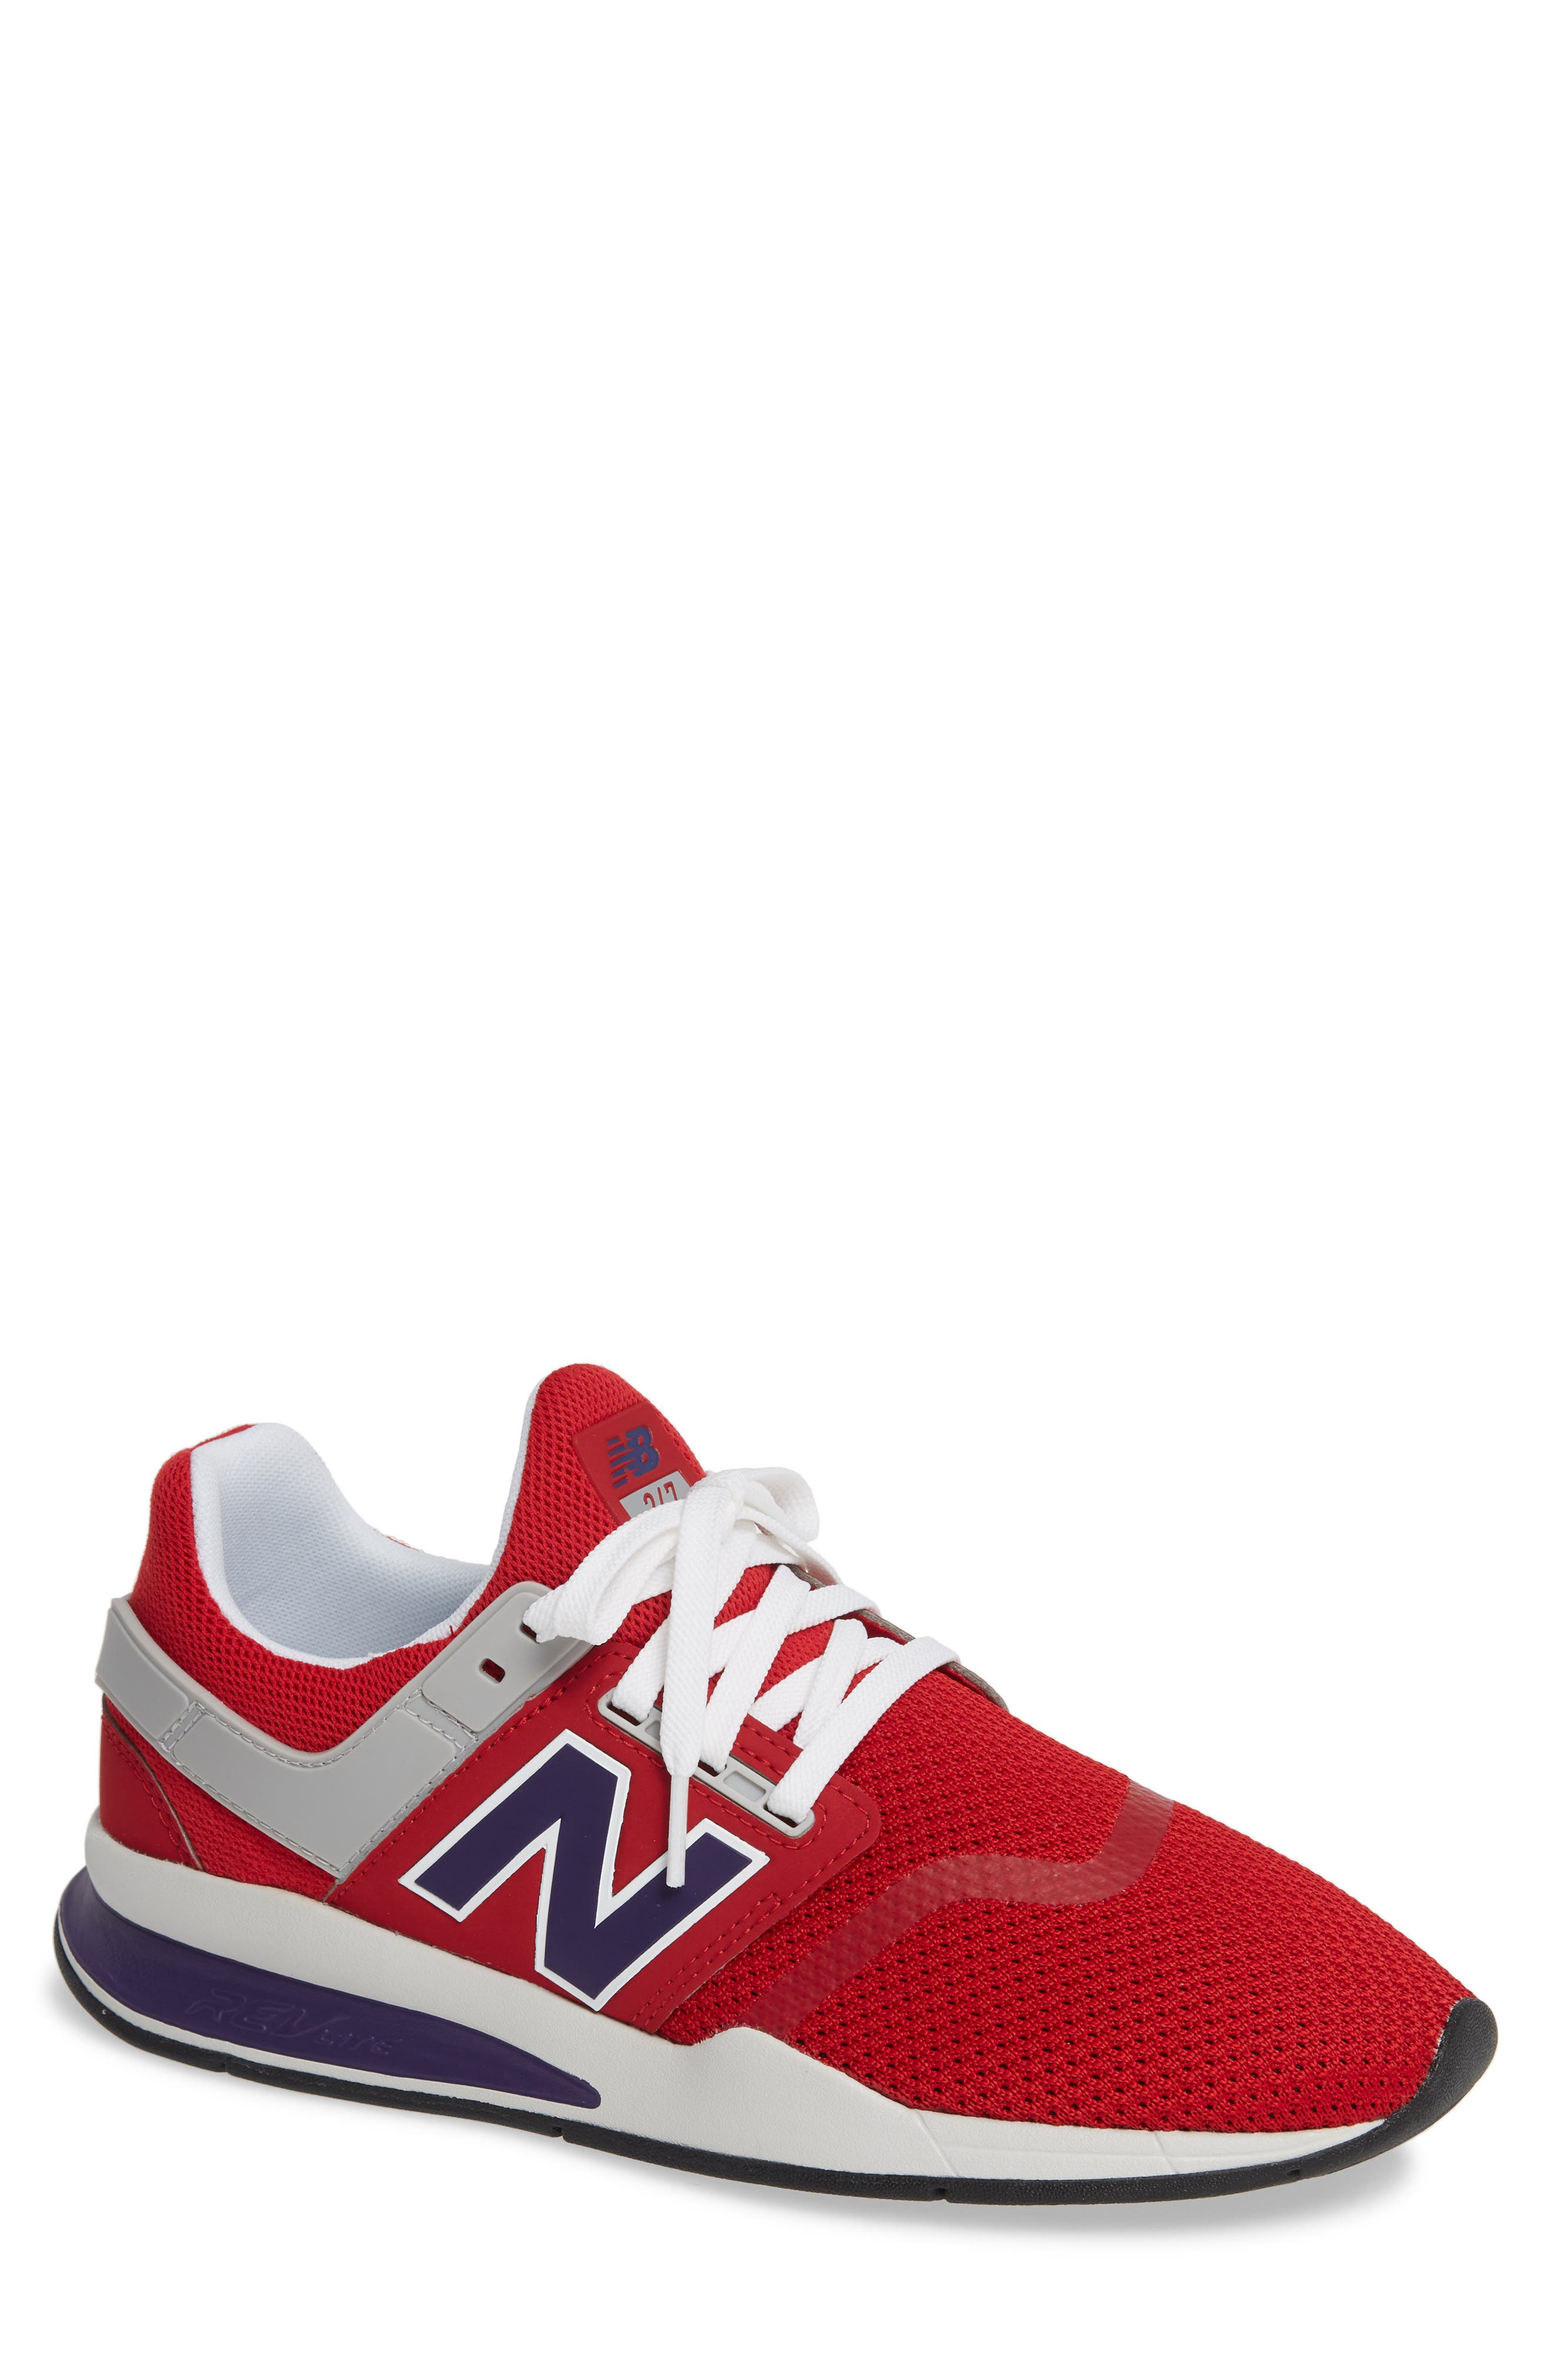 247 Sneaker,                         Main,                         color, TANGO RED SYNTHETIC/ MESH